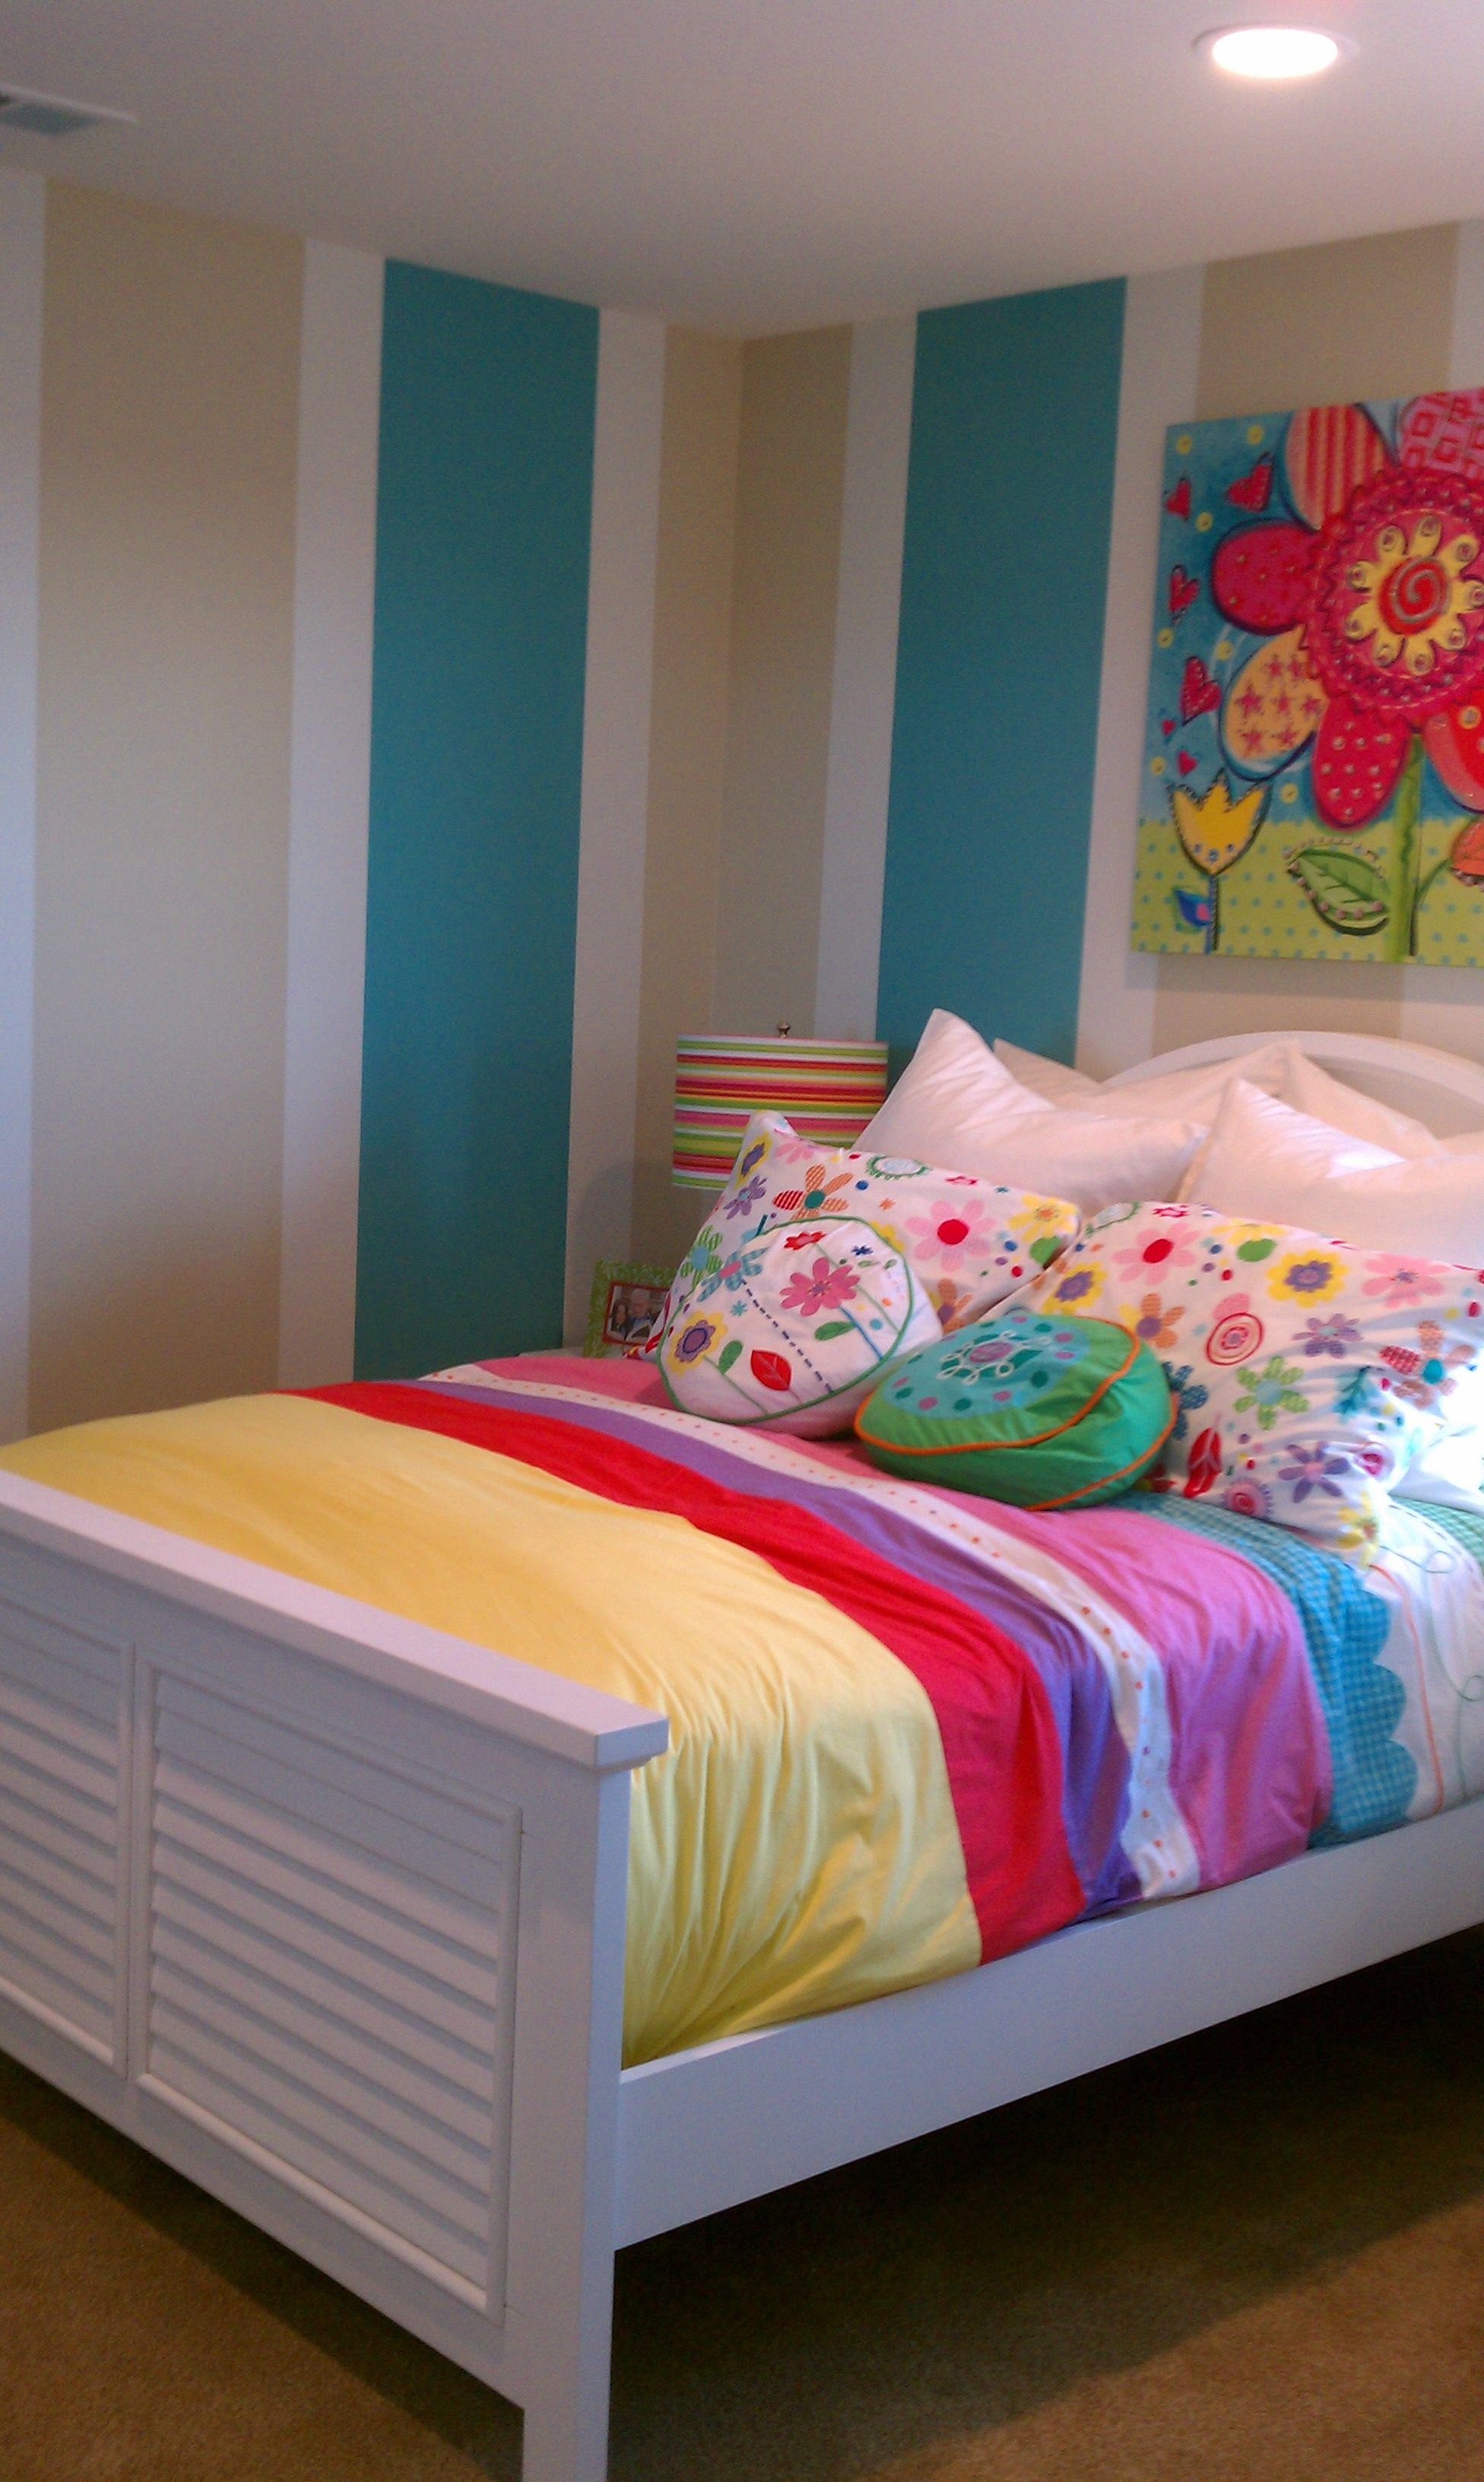 Vertical Stripes For Wall Boy Room Paint Kids Playroom Striped